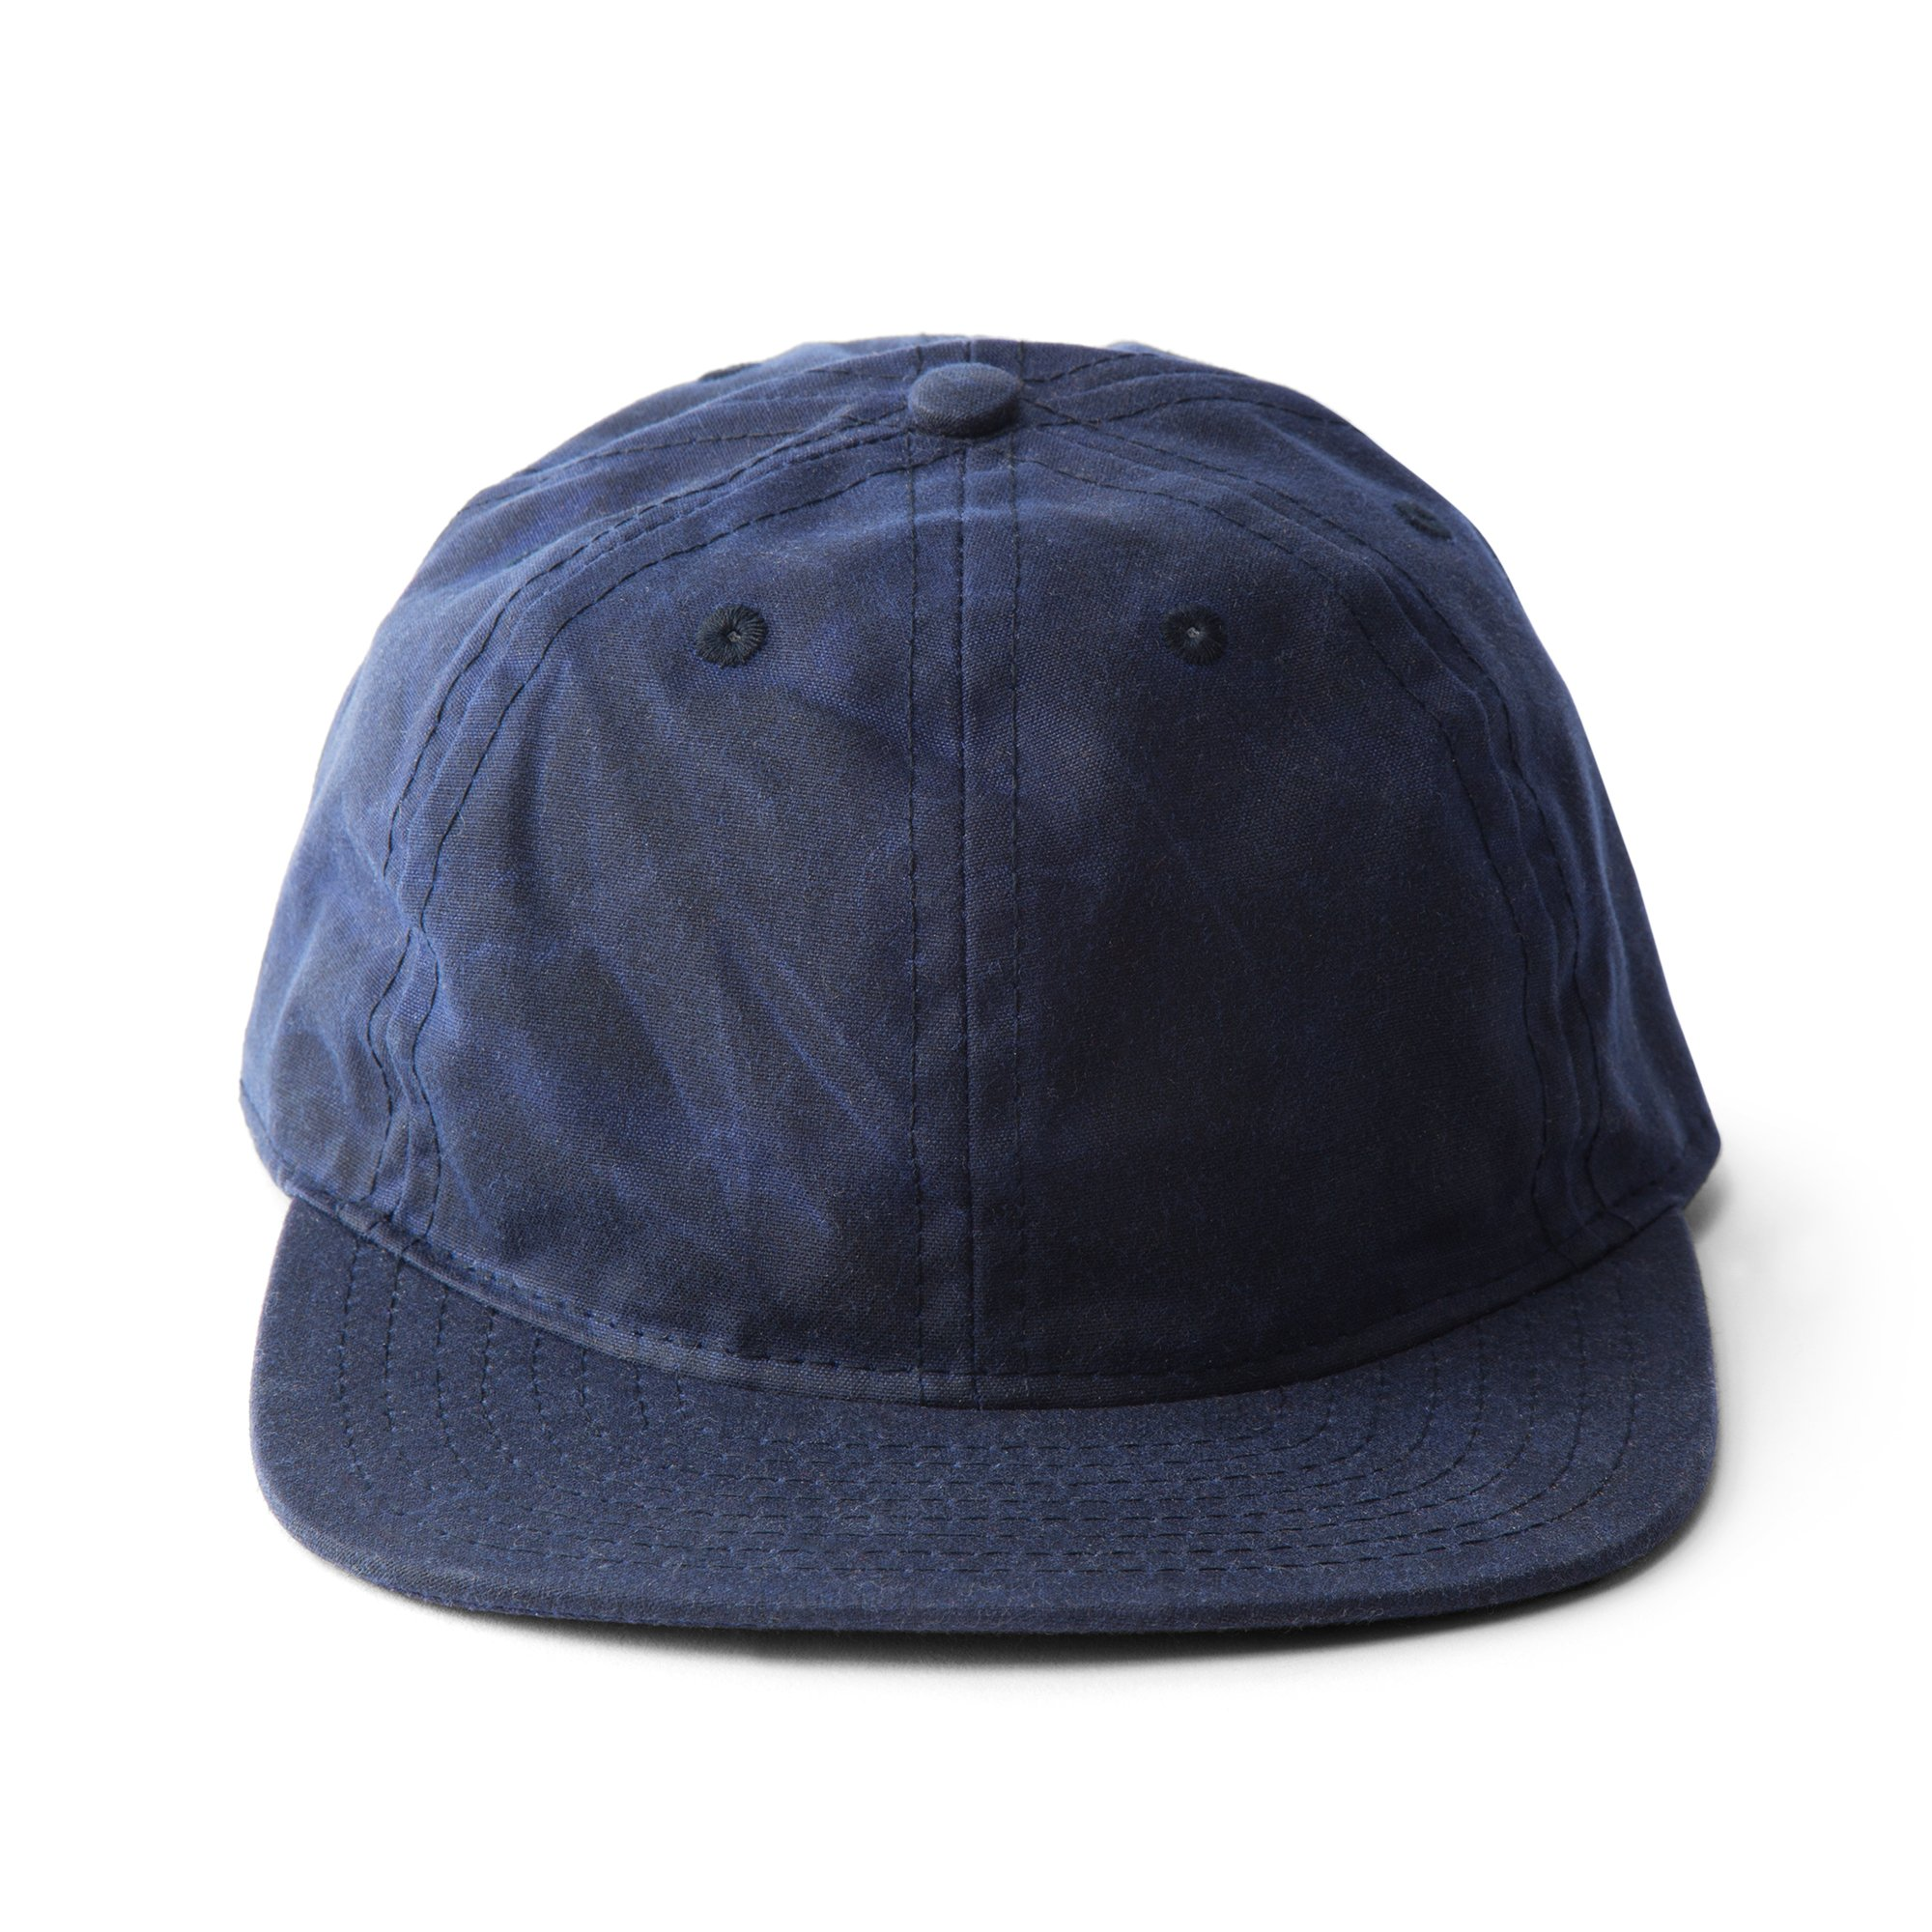 793e552dd3f7d Waxed Cotton Ball Cap